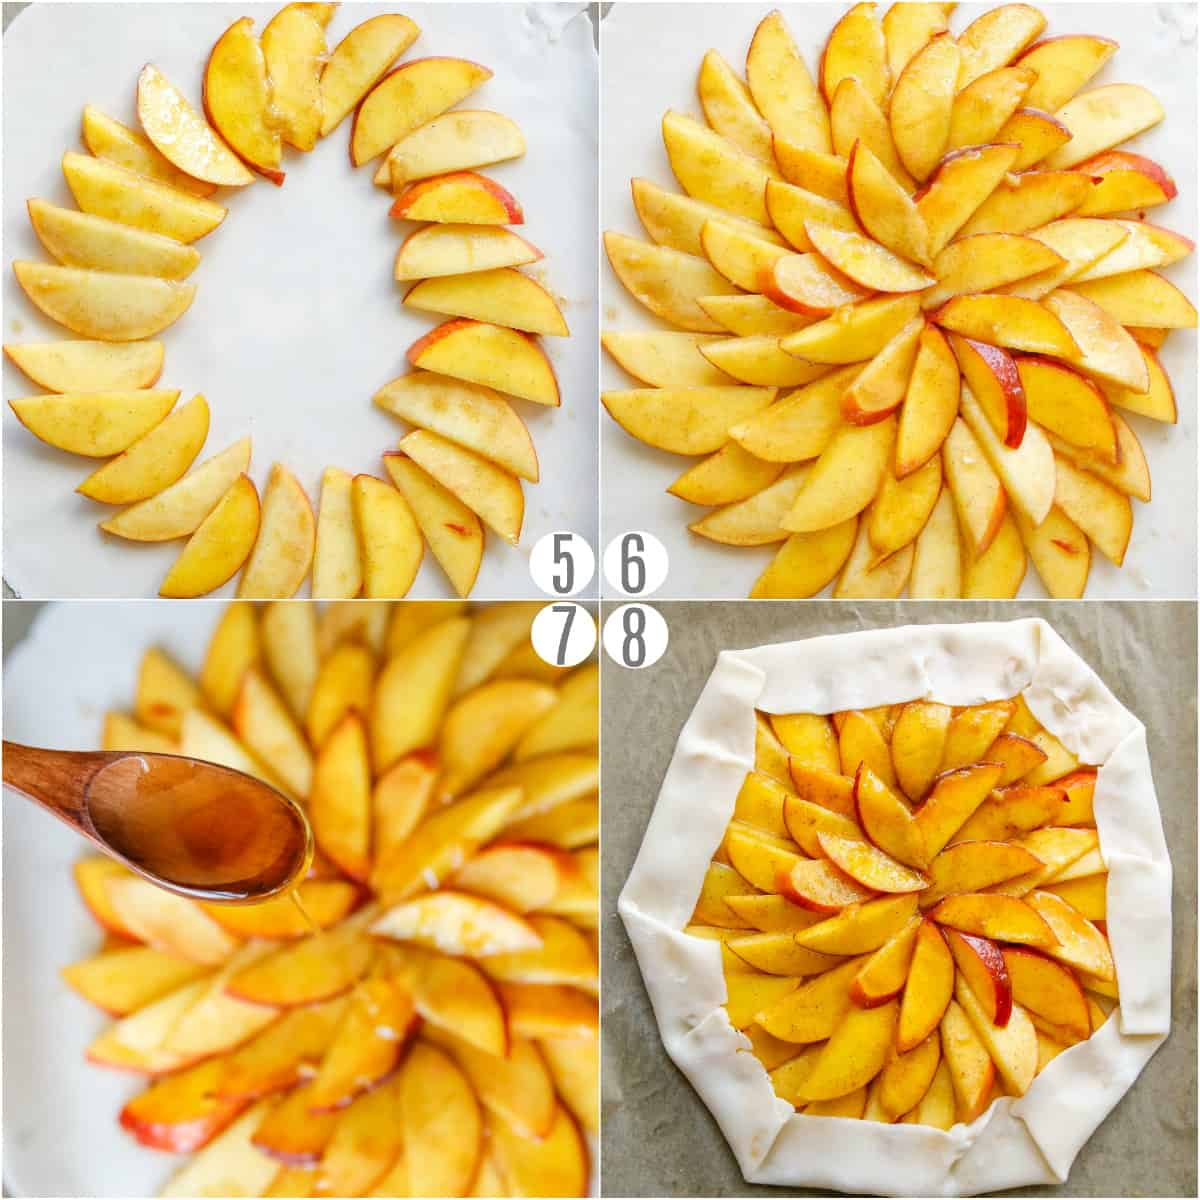 Step by step photos showing to to arrange peaches on a galette crust.